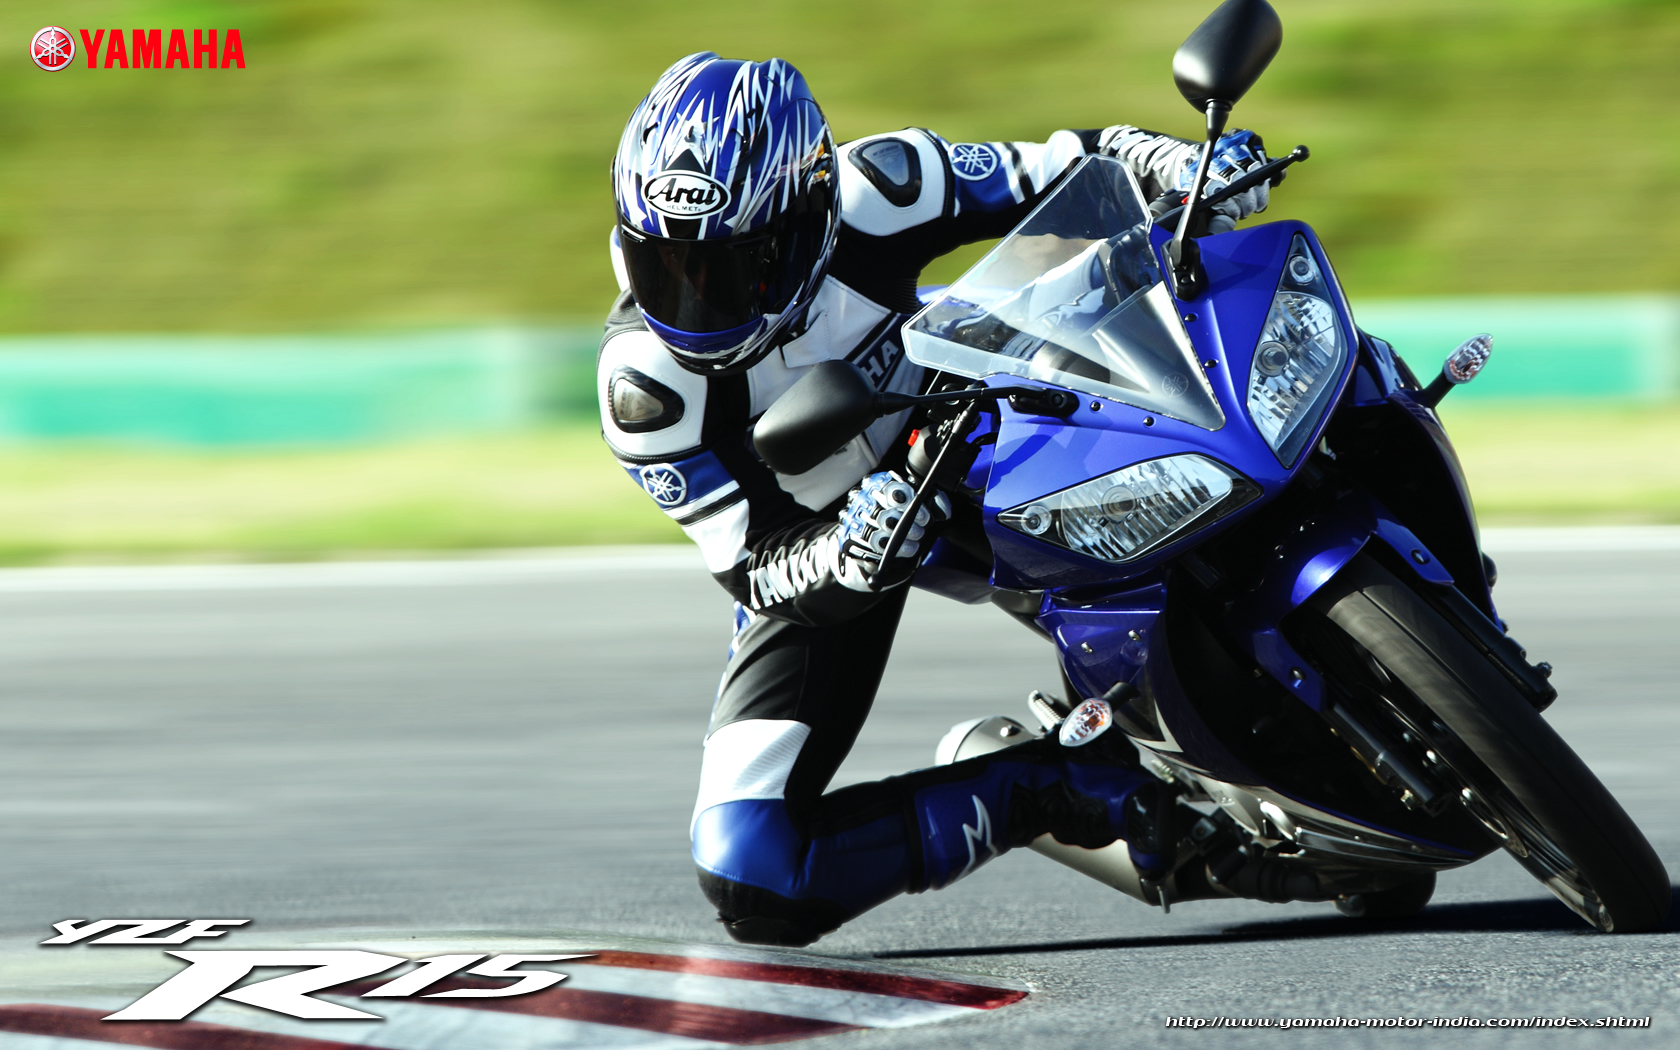 Yamaha fazer white blue images amp pictures becuo - Yamaha Yzf R15 Wallpaper